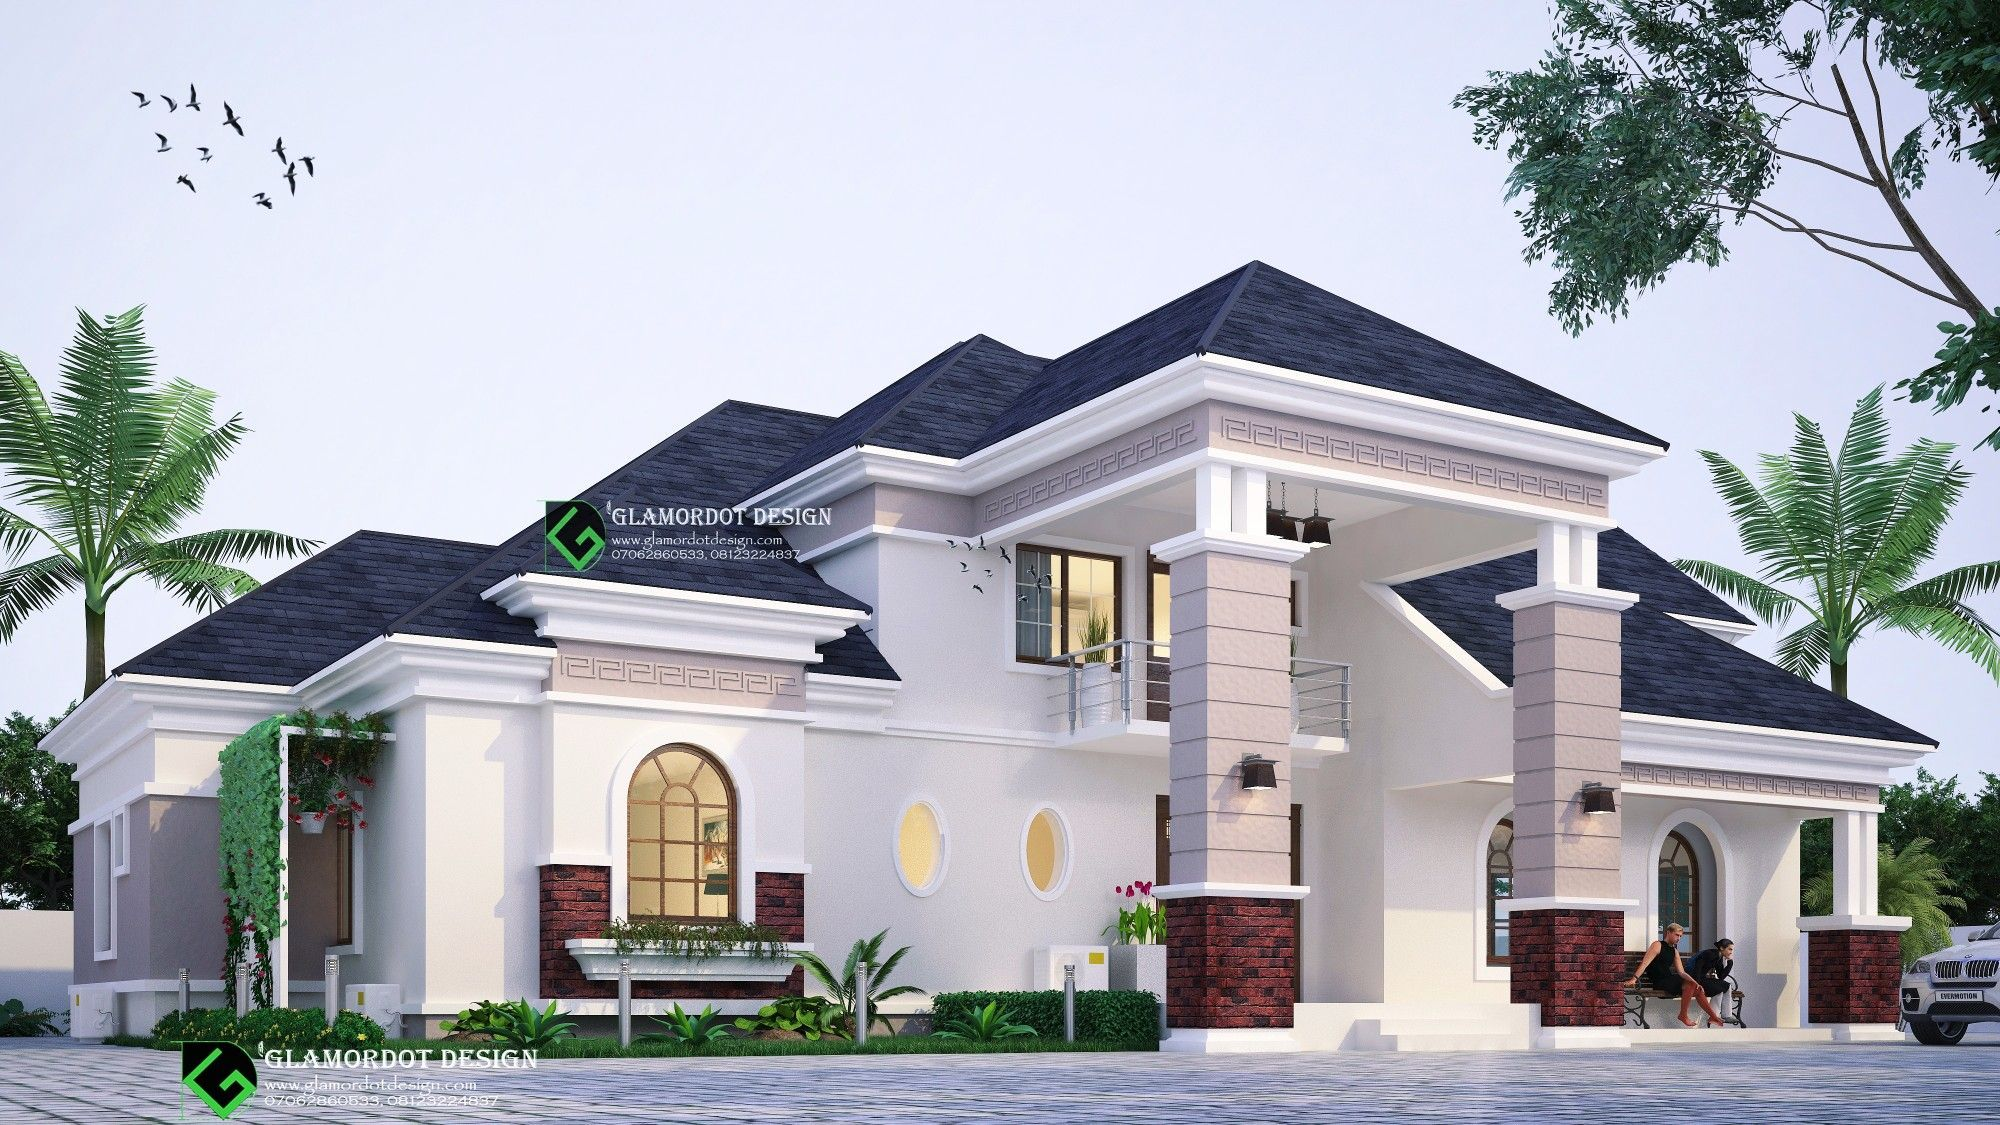 5 Bedroom Bungalow With A Penthouse Attic Space With 2 Balconies Located In Nigeria For Inqu Bungalow House Design House Outside Design House Plans Mansion